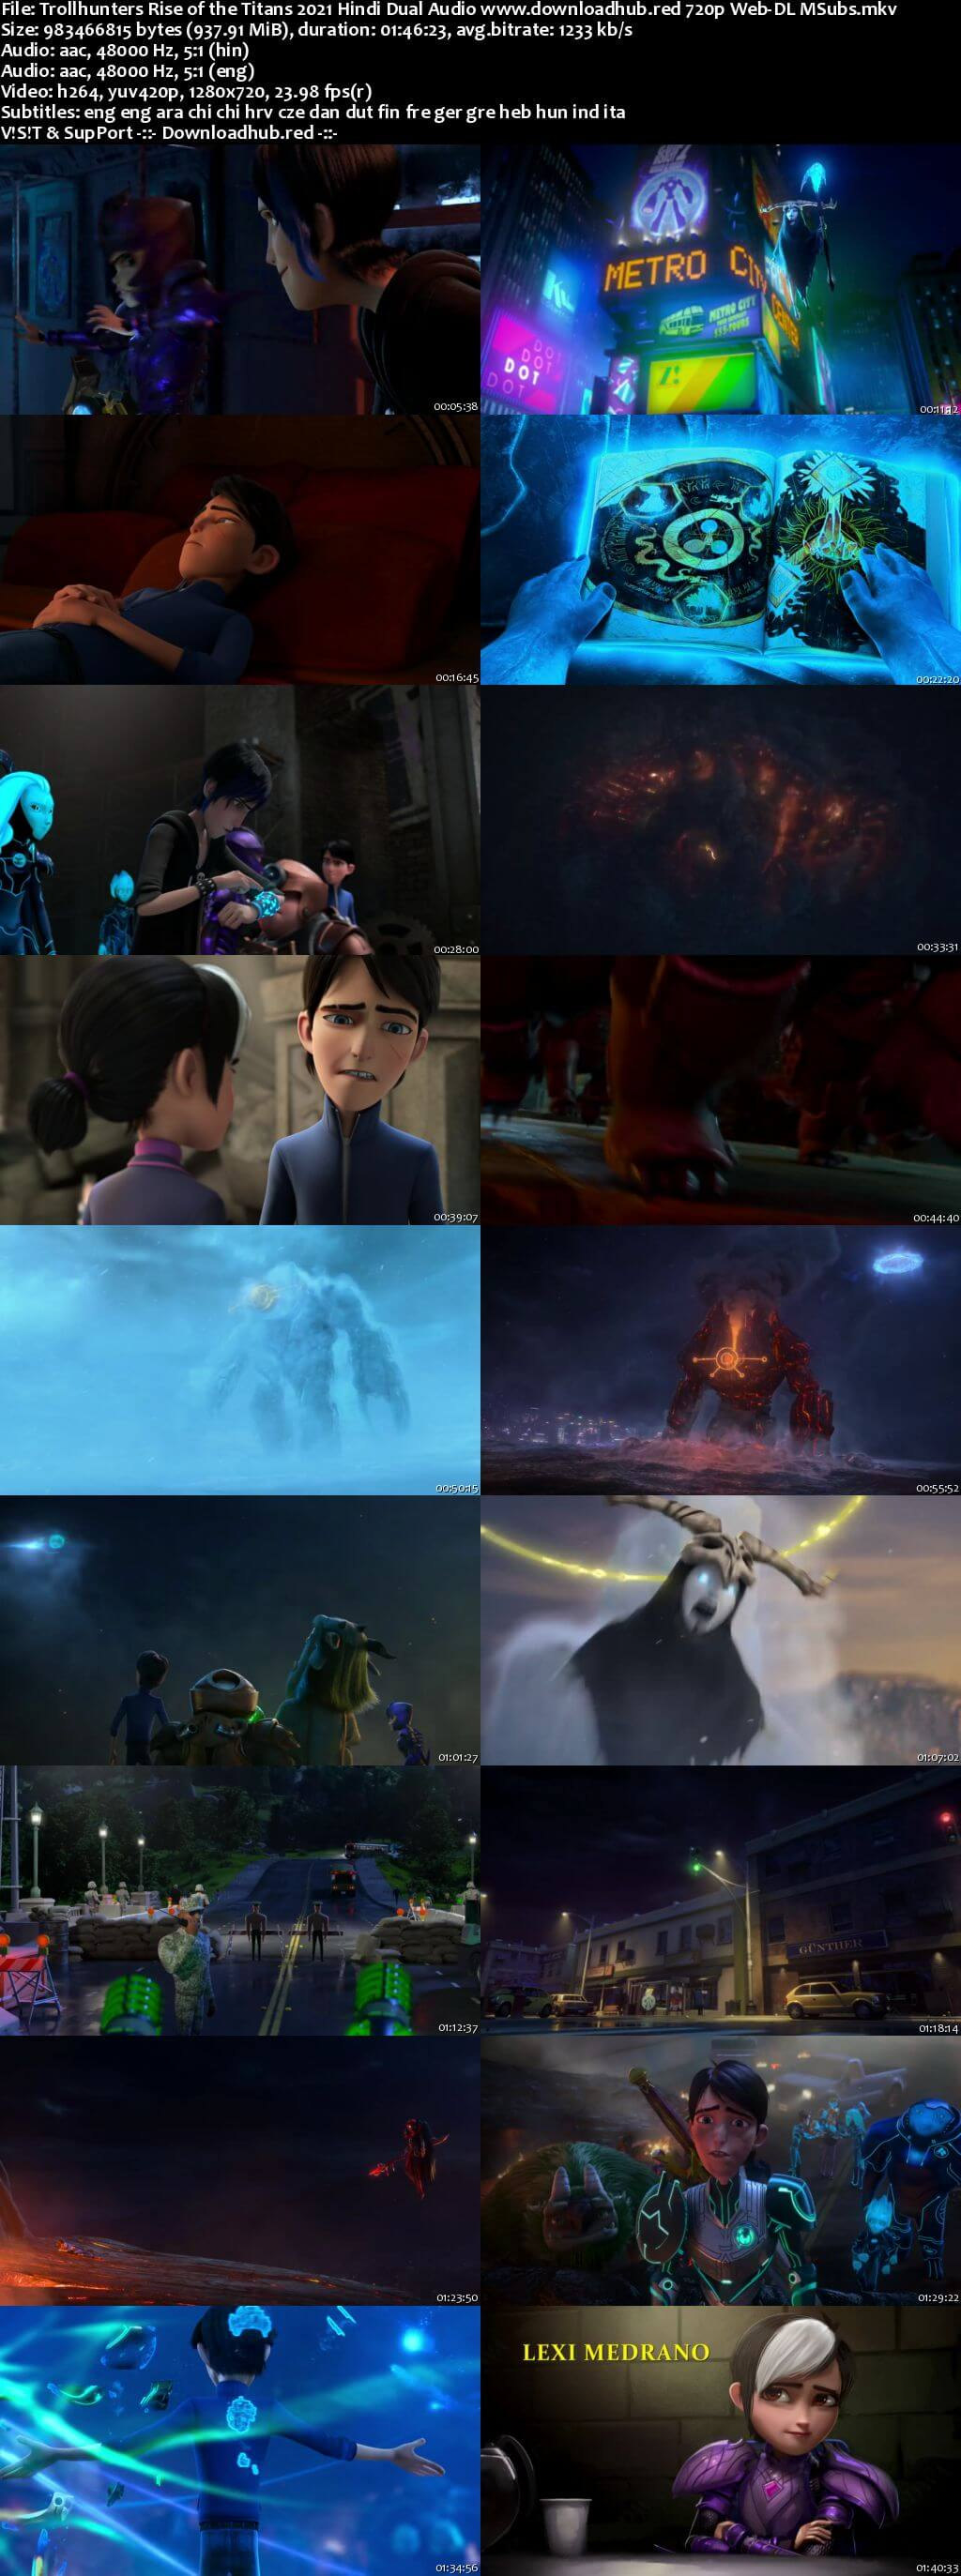 Trollhunters Rise of the Titans 2021 Hindi Dual Audio 720p Web-DL MSubs